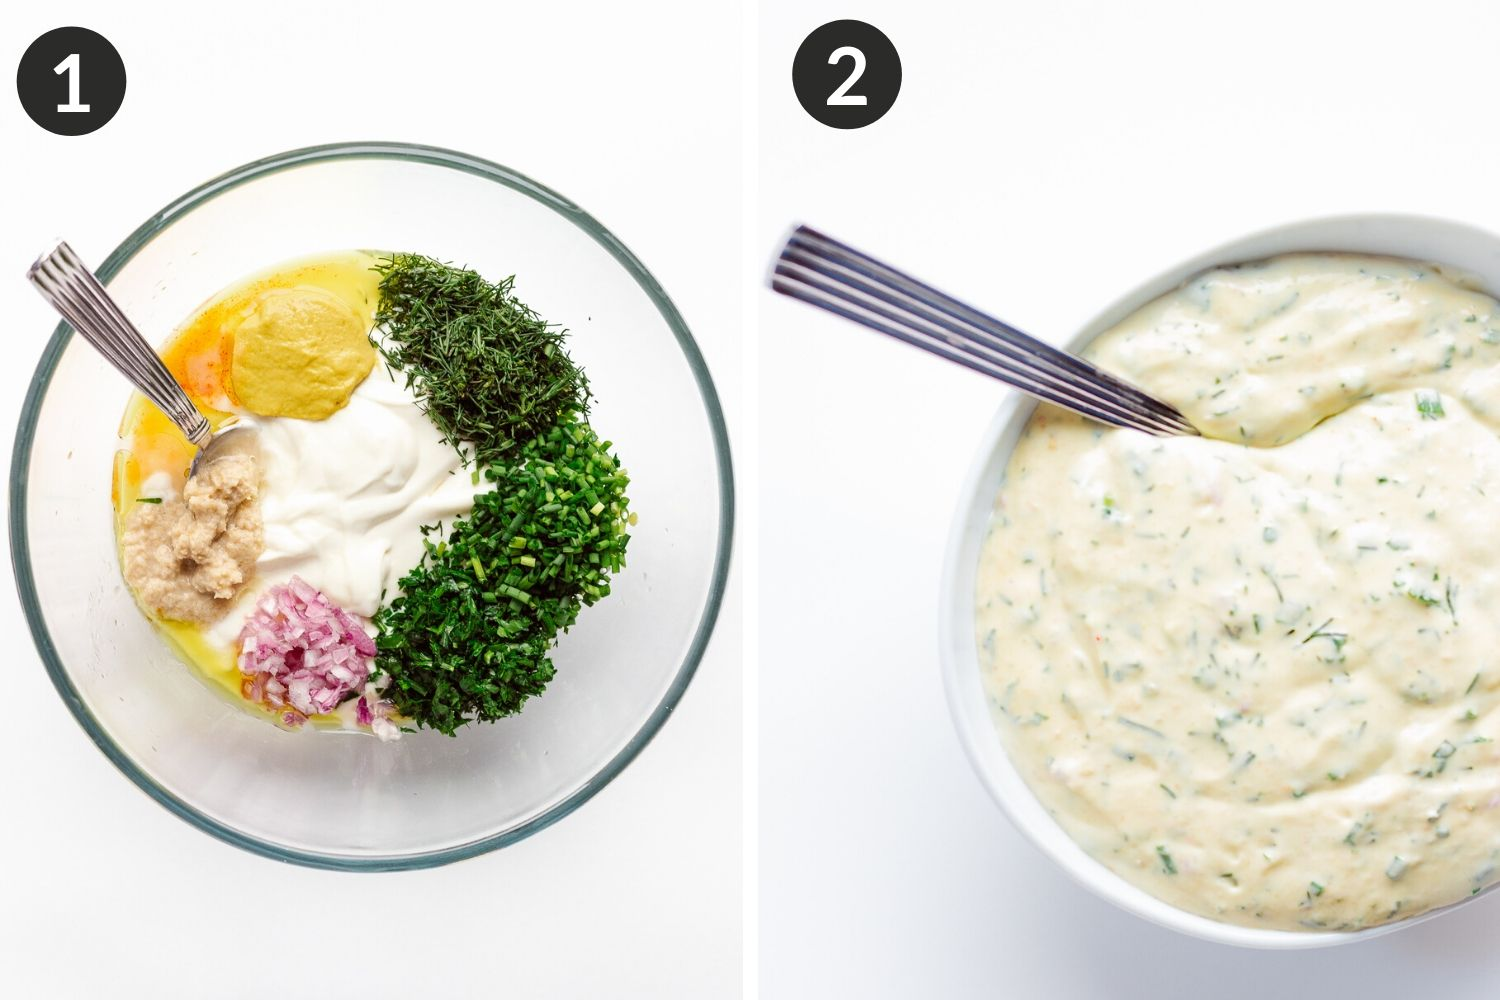 Process collage showing how to make creamy herb sauce/dip.